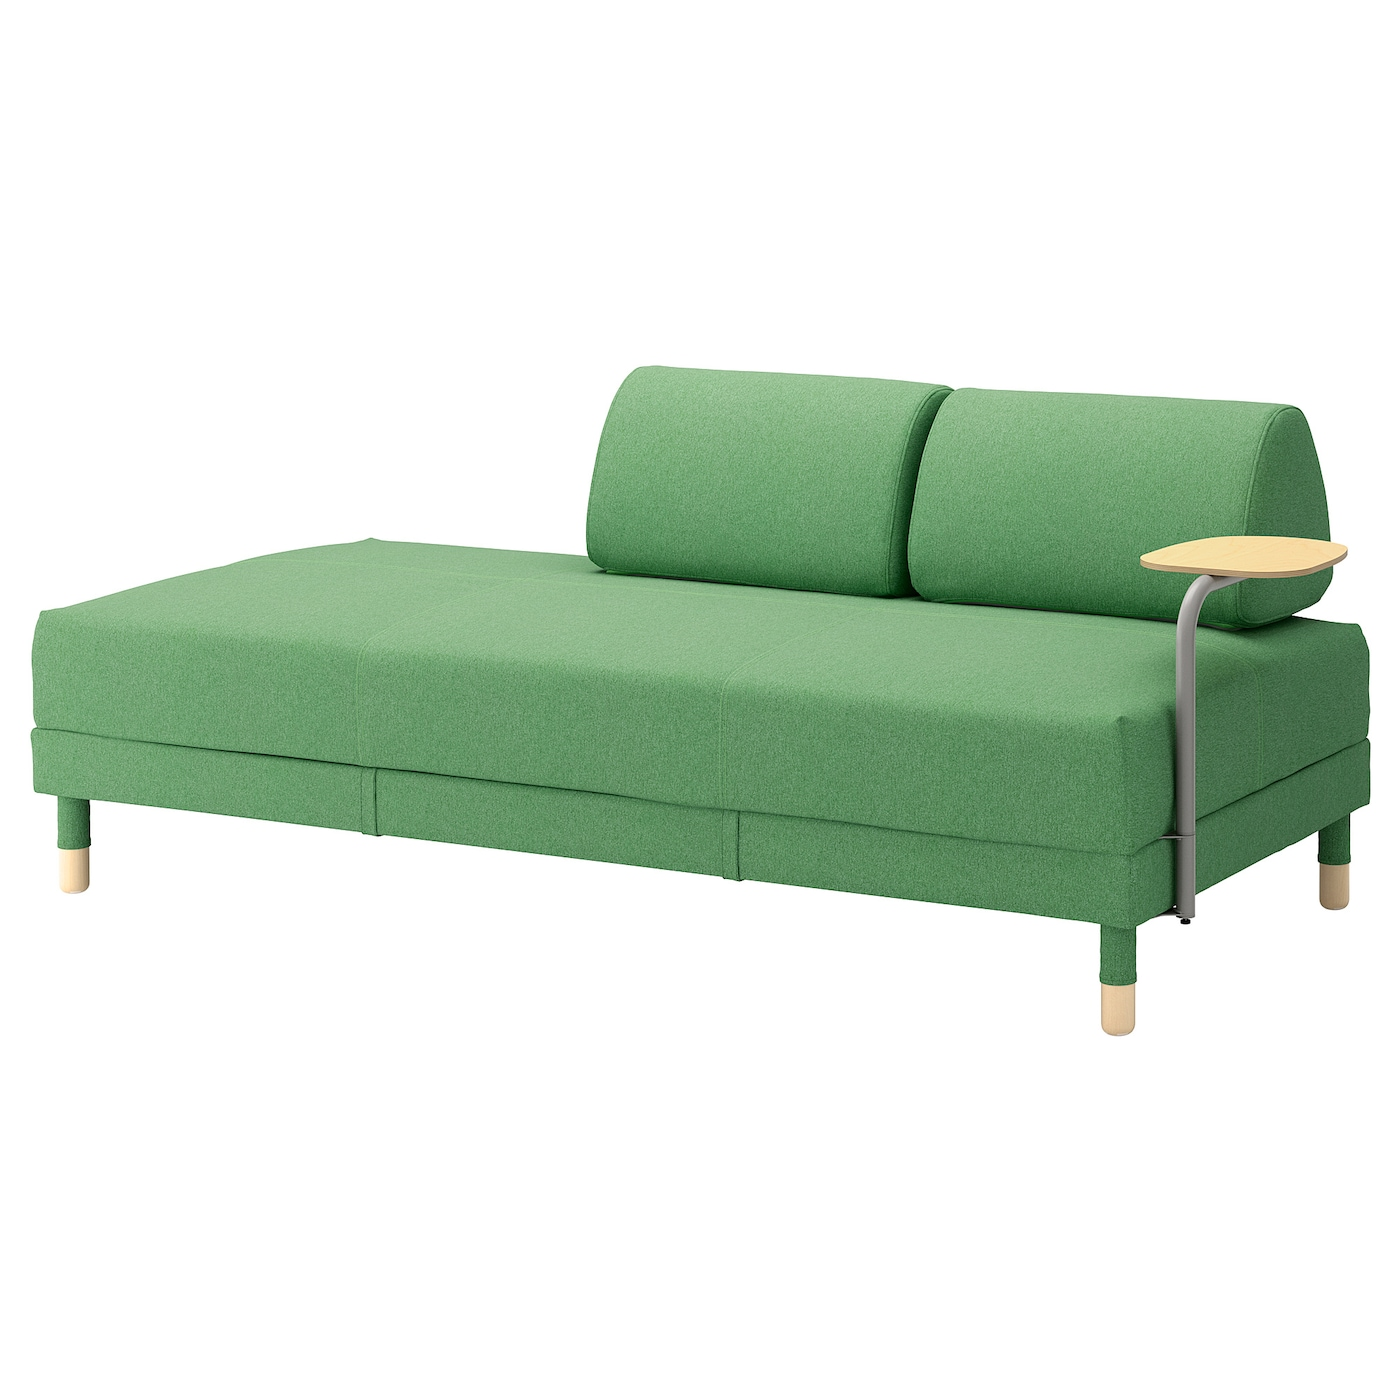 Flottebo Sofa Bed With Side Table Lysed Green 90 Cm Ikea